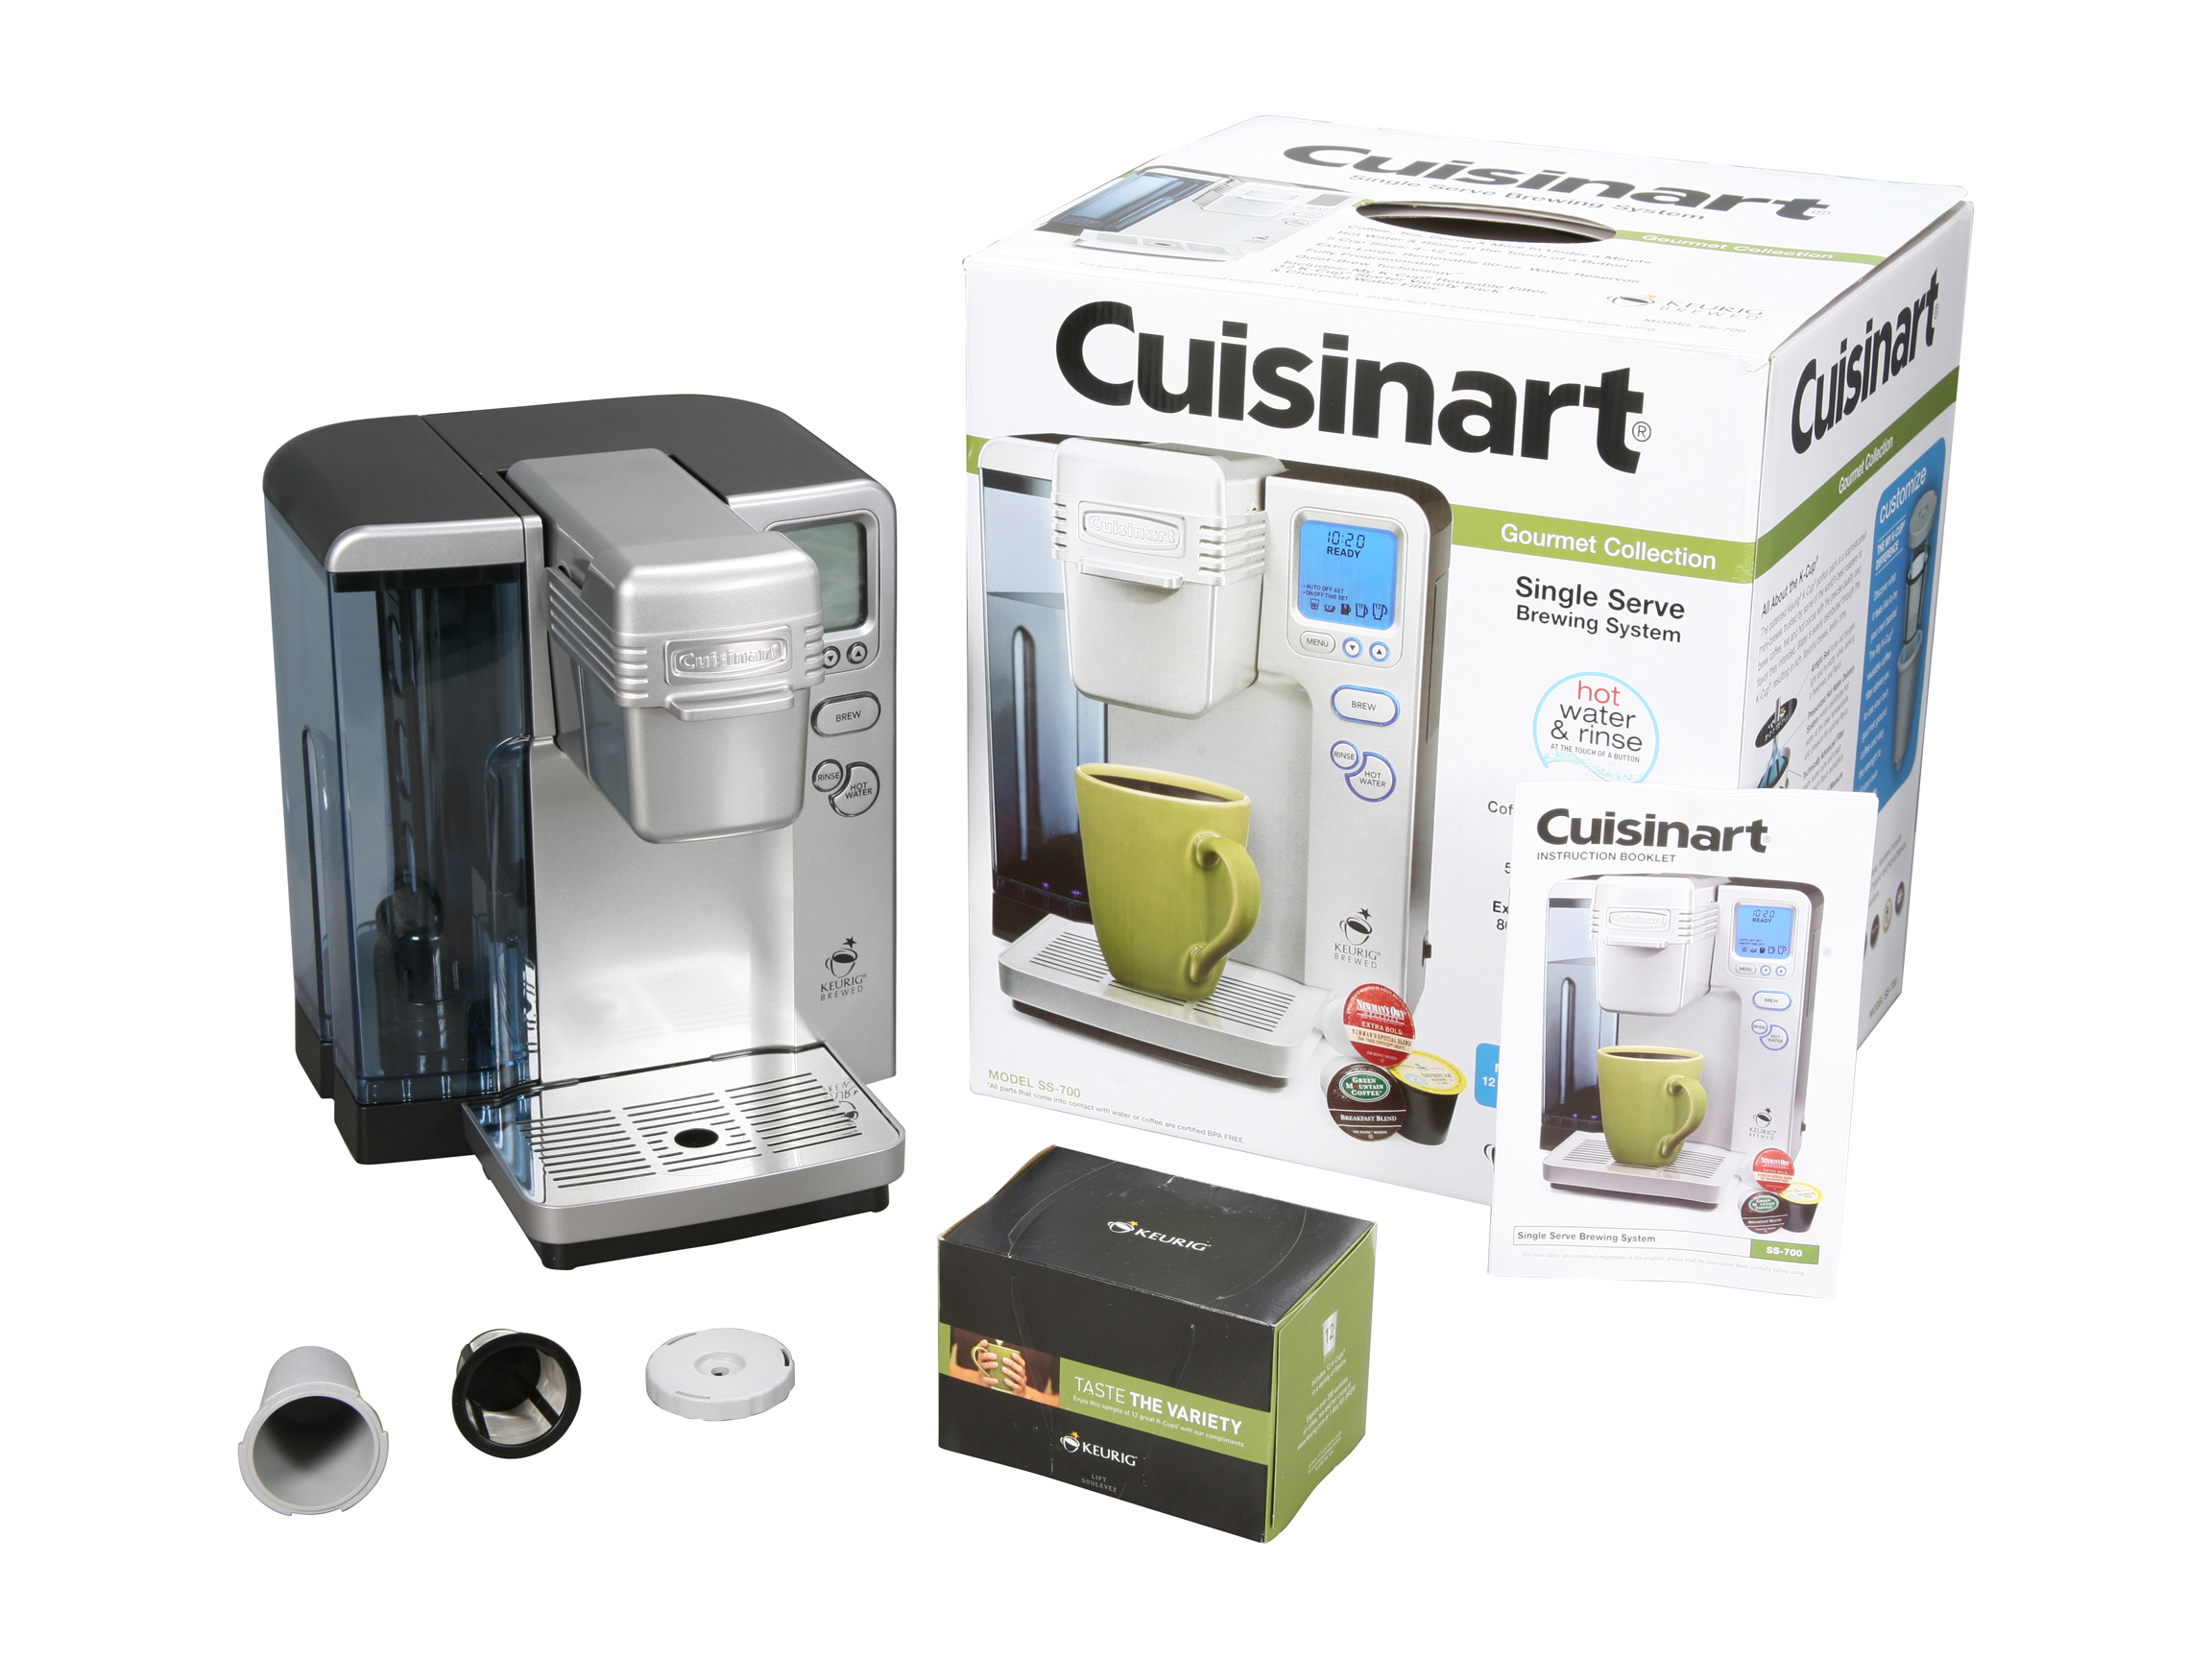 Cuisinart SS-700 Keurig K-Cups Single Serve Brewing System Silver